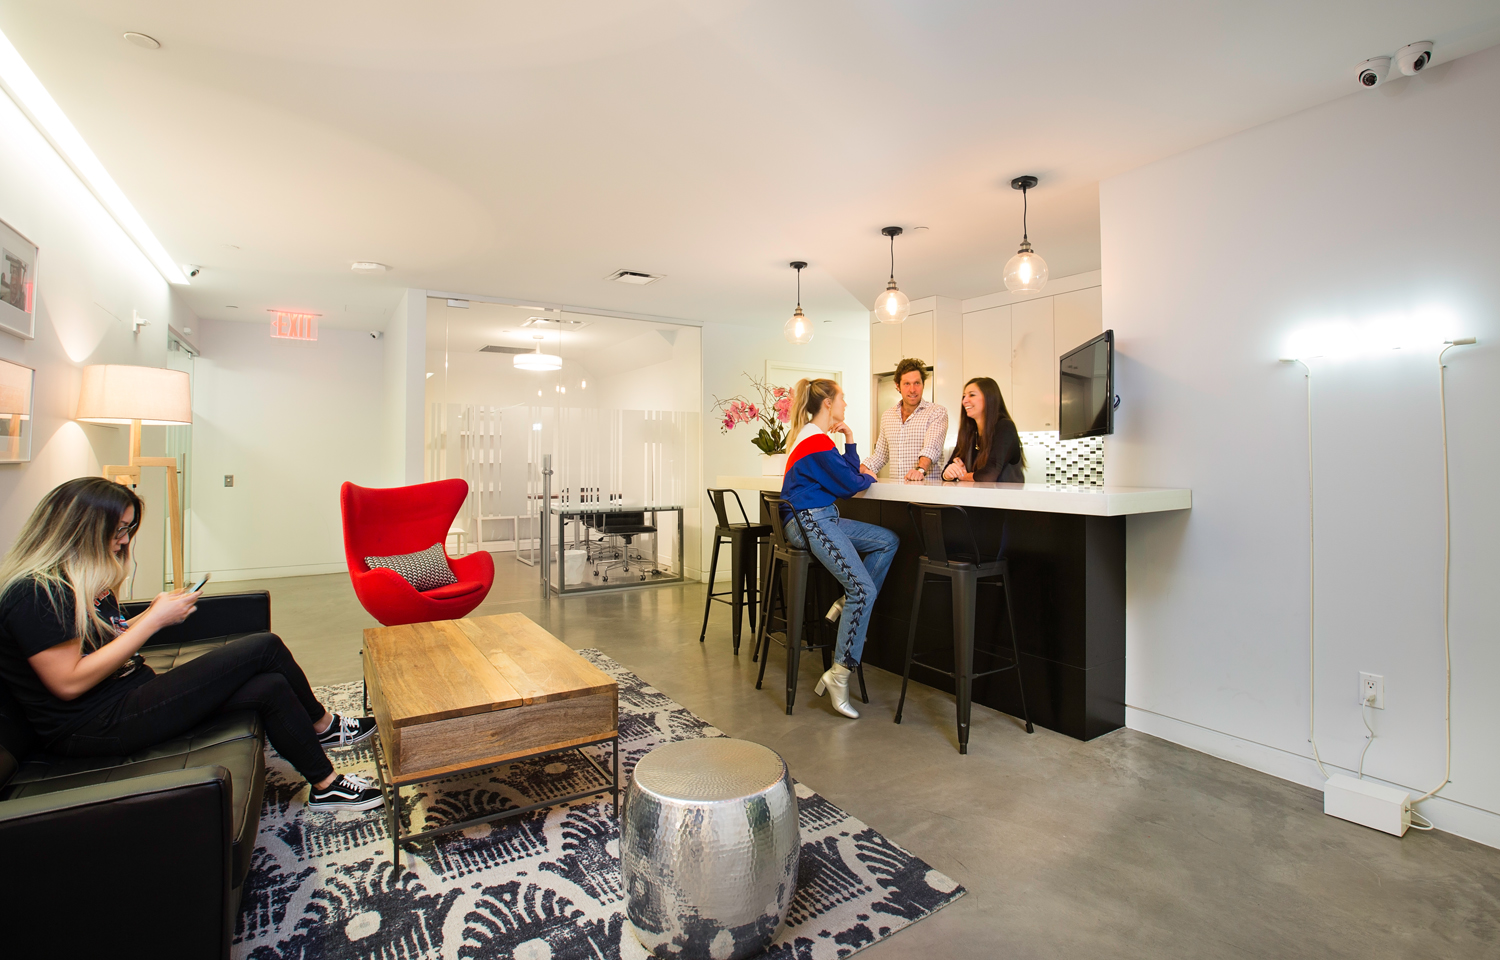 memberships - Flexible memberships for entrepreneurs, consultants, startups, and more. Space 530 offers two levels of membership, from virtual to co-working. Providing the flexibility your organization needs to grow. Membership options combine a collaborative environment with a functioning platform.